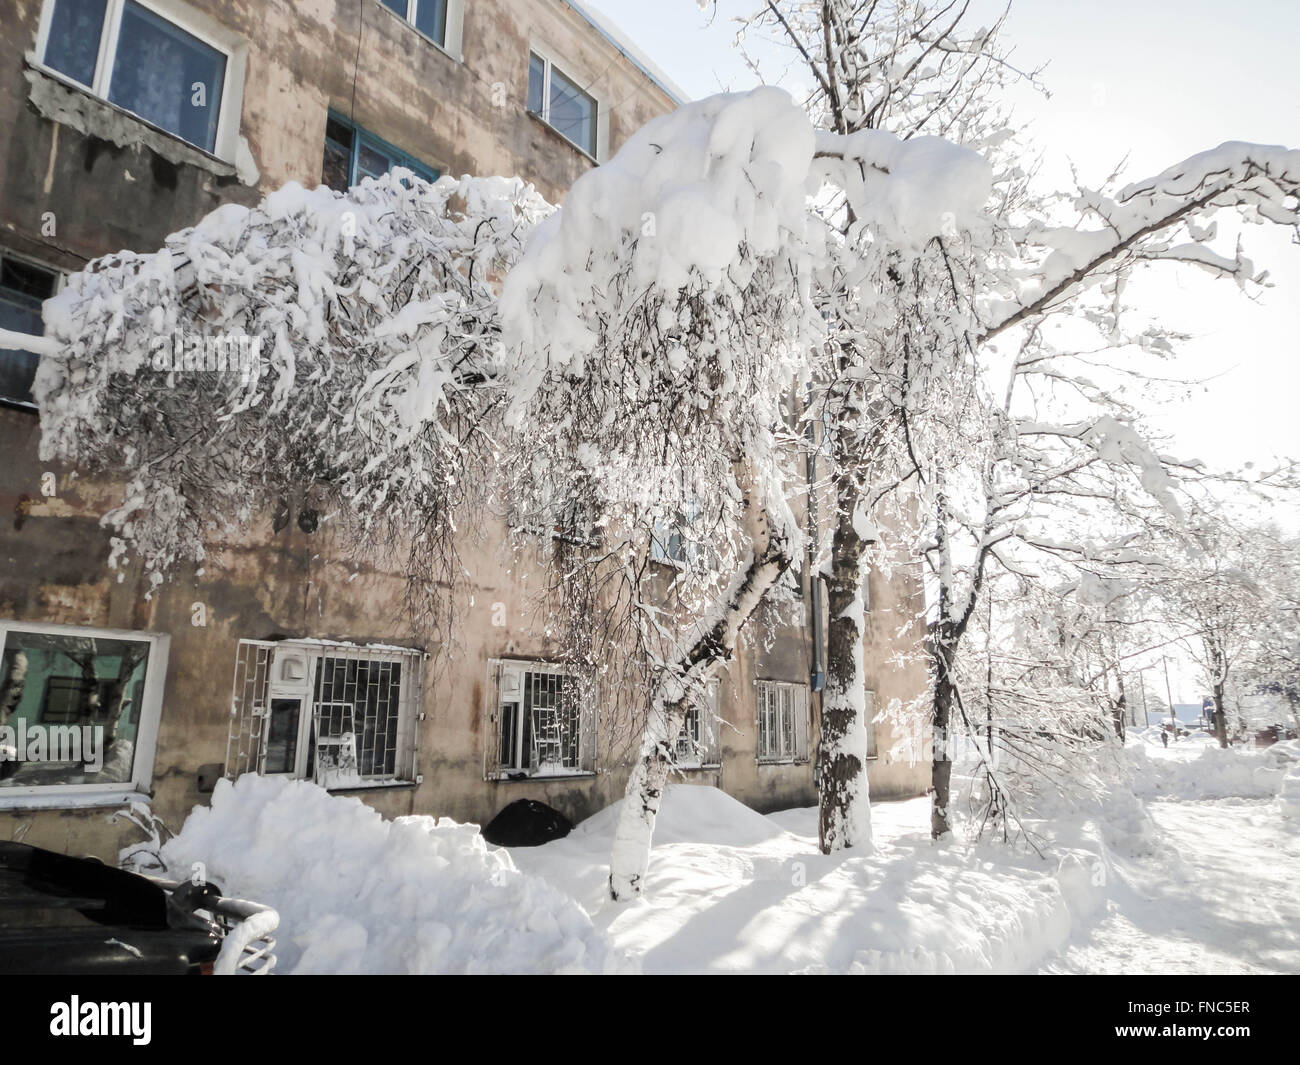 Big snow cover on a small tree - Stock Image